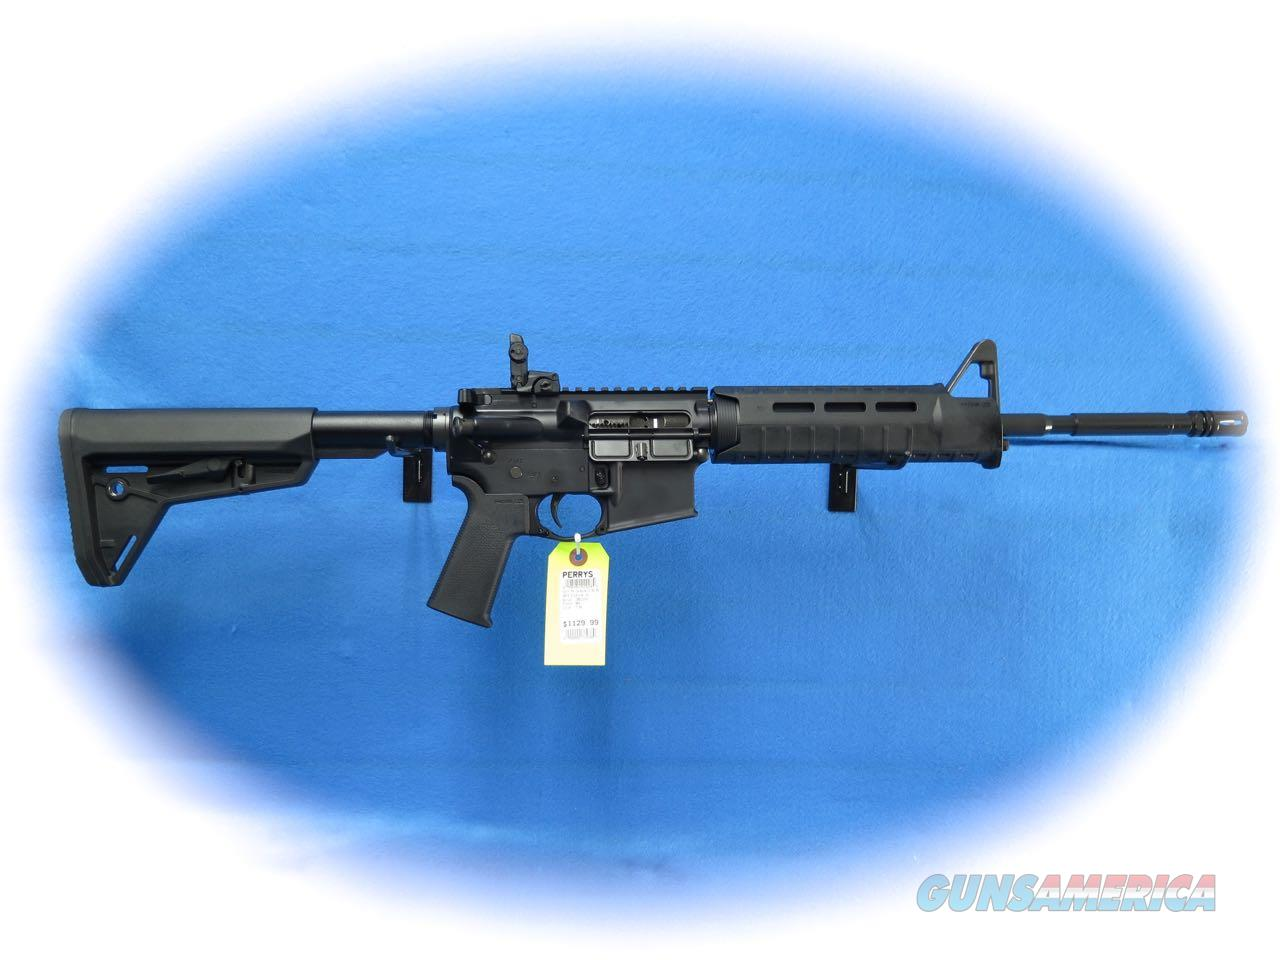 Colt M4 CARBINE MAGPUL SL BLACK 5.56mm Semi Auto Rifle **New**  Guns > Rifles > Colt Military/Tactical Rifles